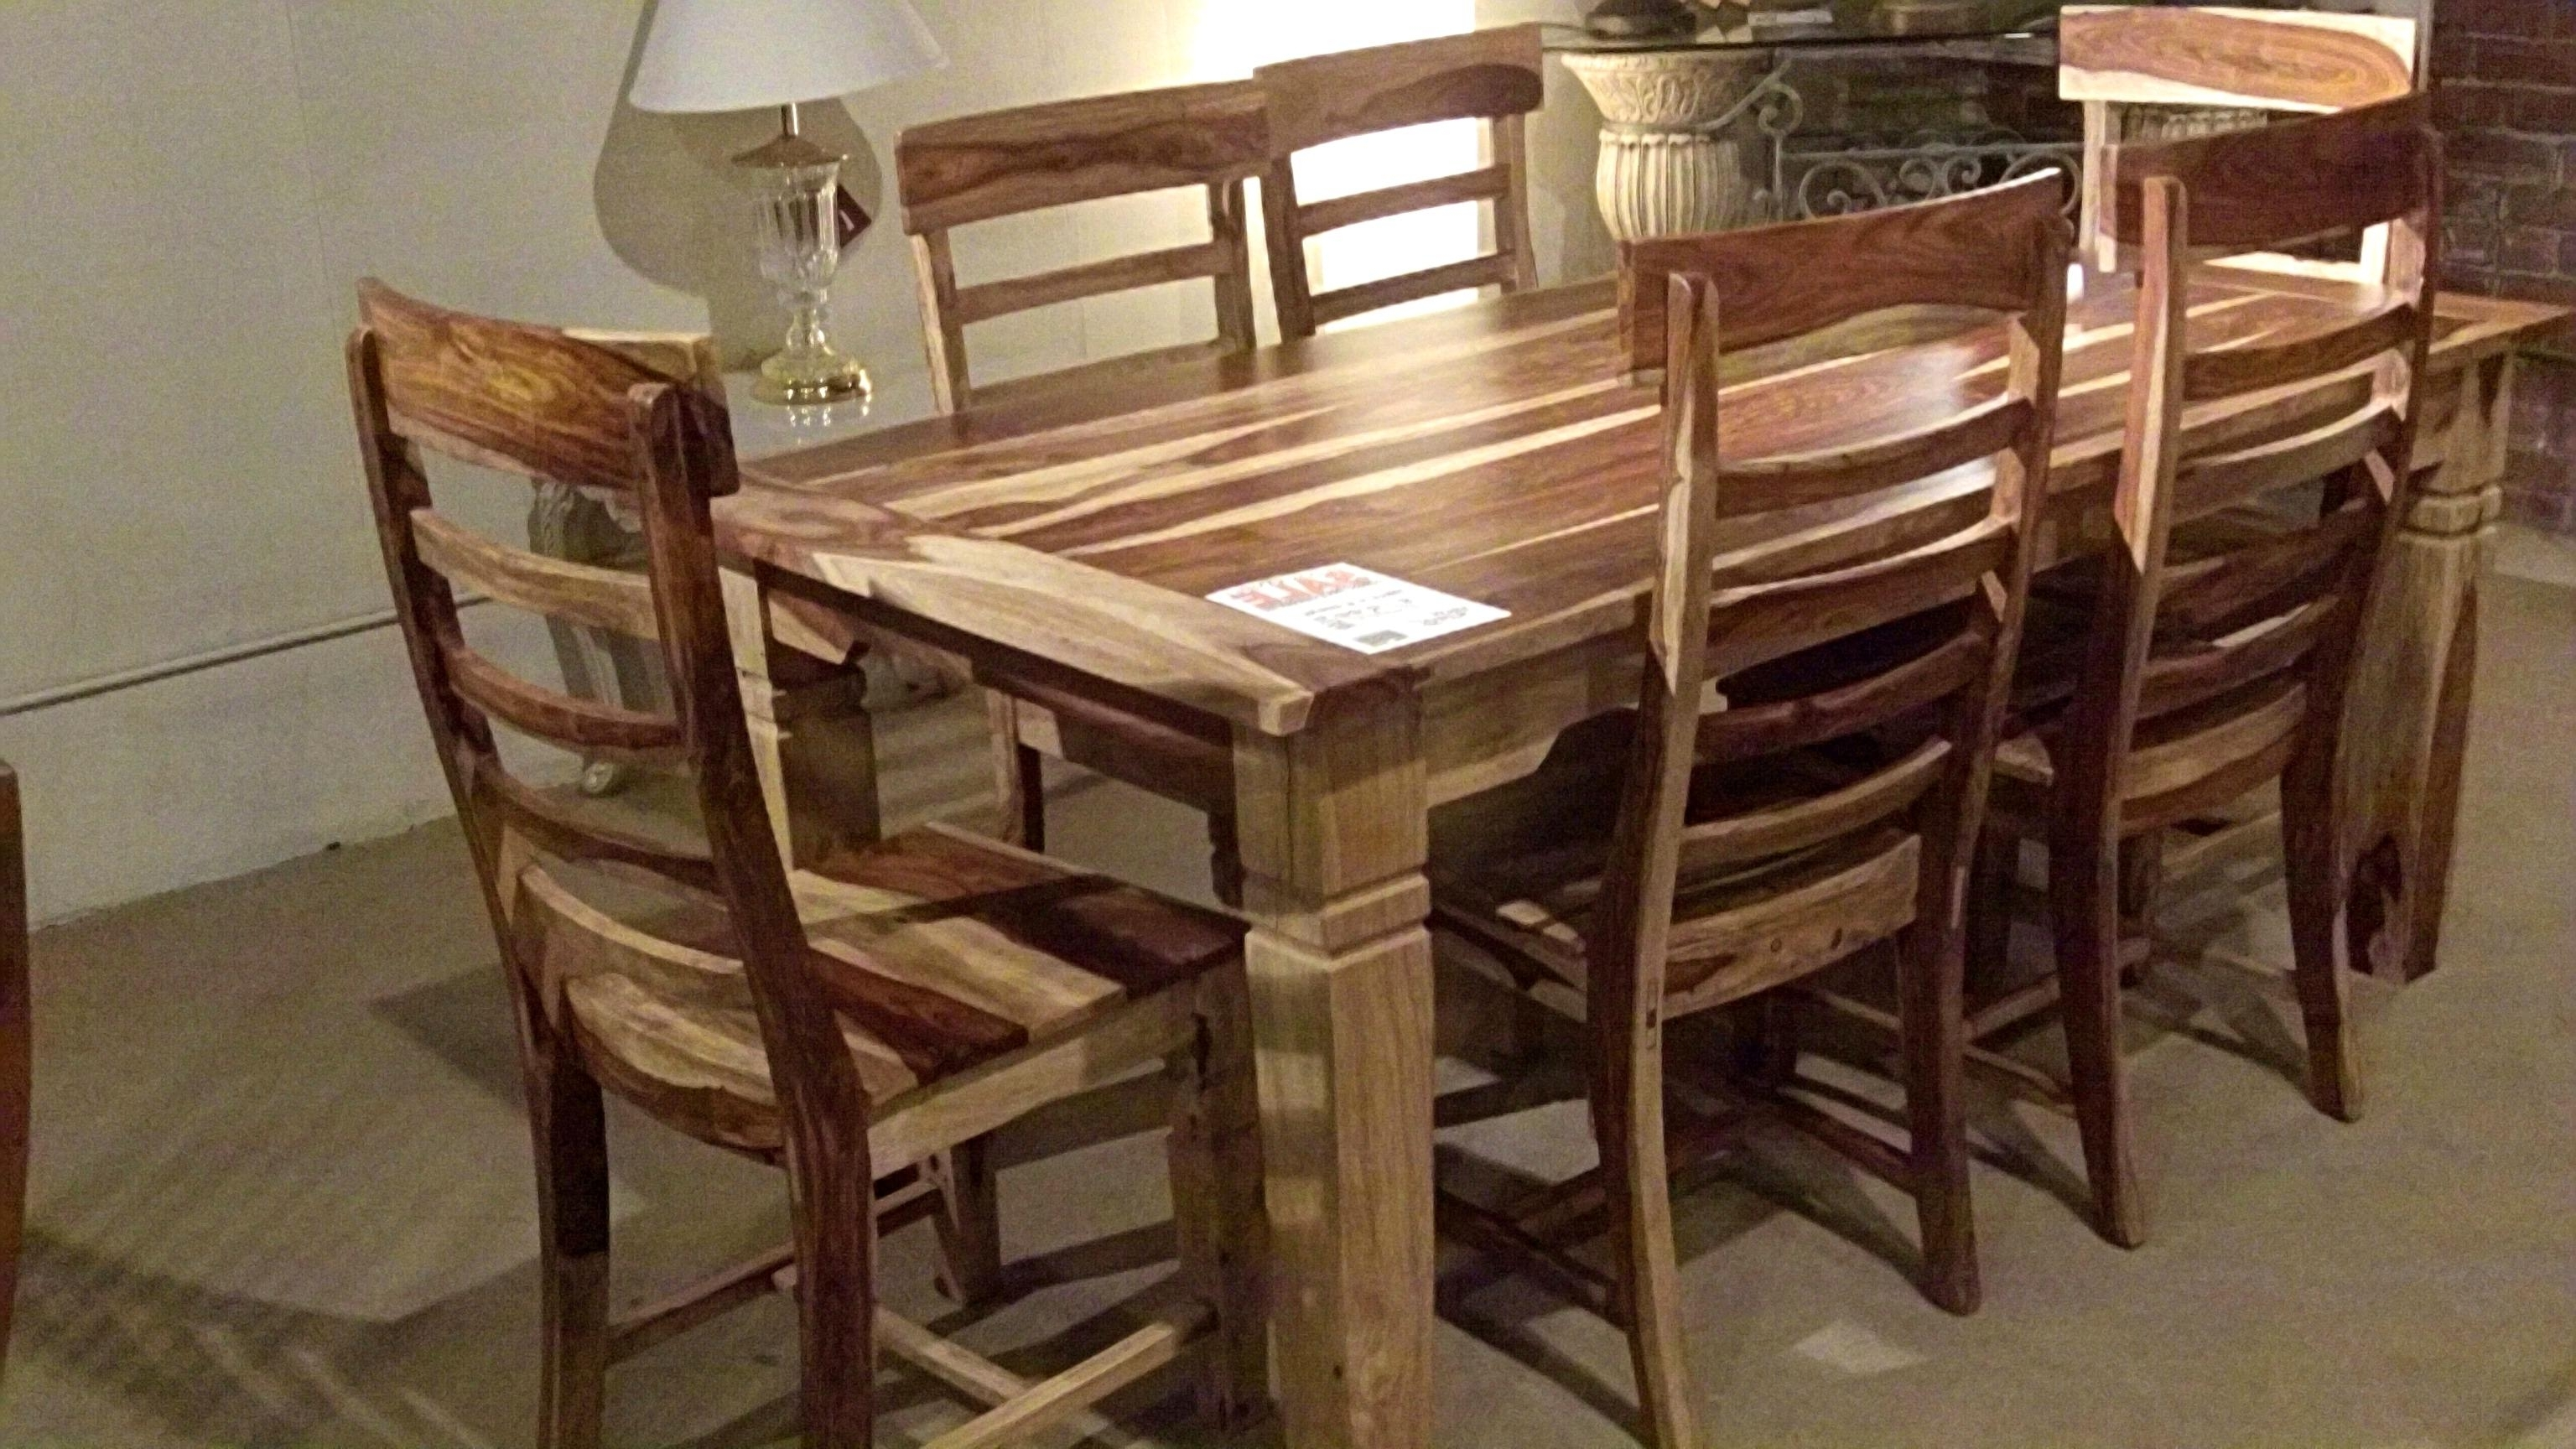 Phenomenal Sheesham Wood Dining Table Cm Pertaining To Fashionable Sheesham Wood Dining Tables (Gallery 8 of 25)